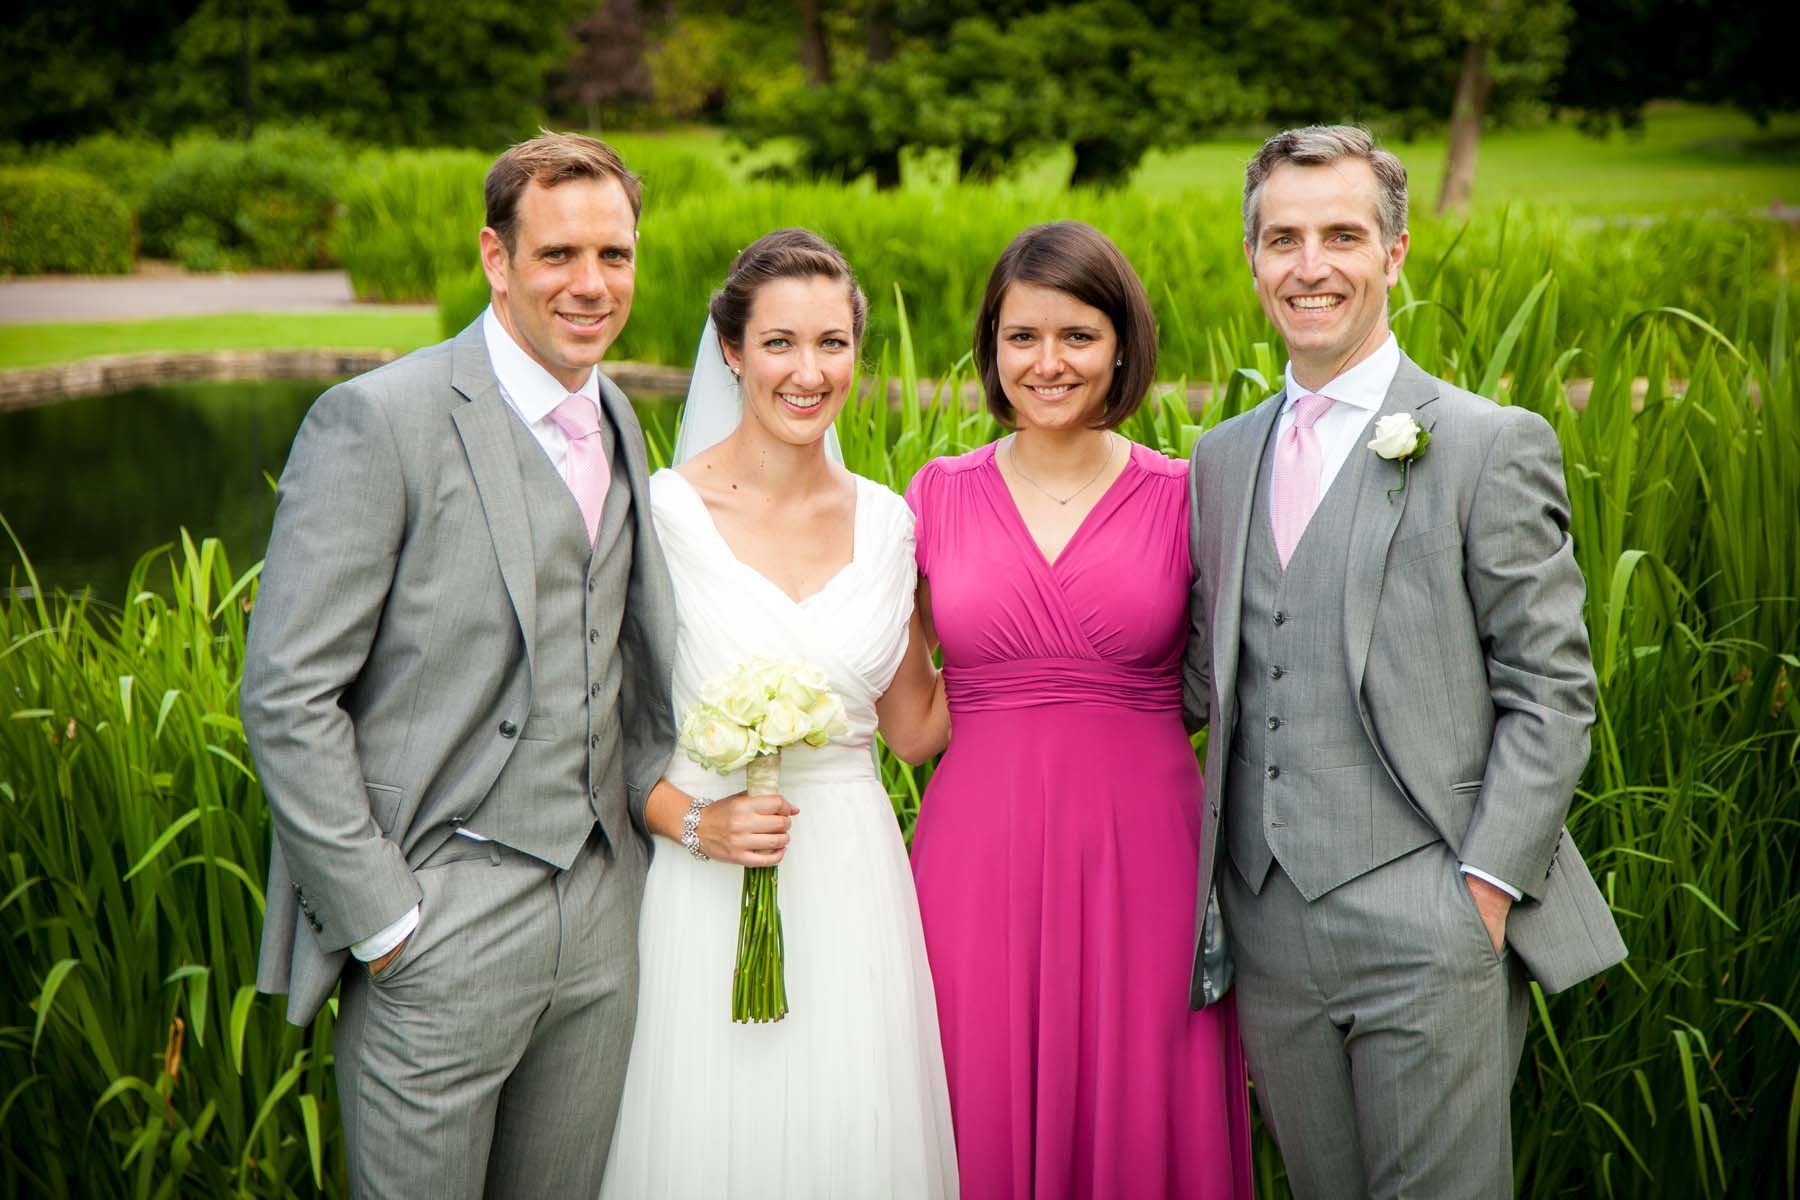 Sussex & Surrey Wedding Photographer - Guests & Groups (16)